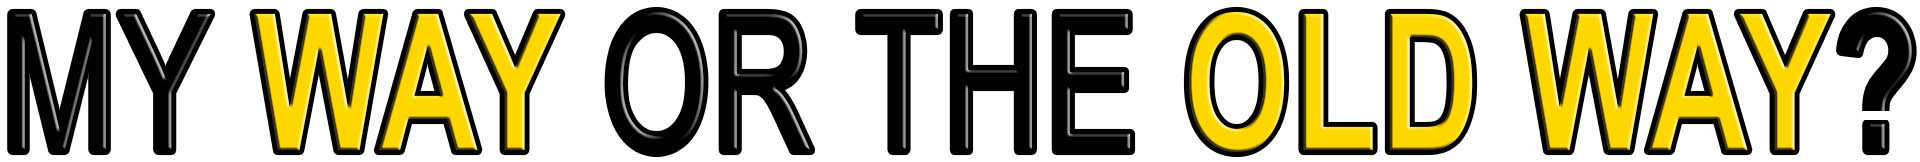 MY WAY OR THE OLD WAY